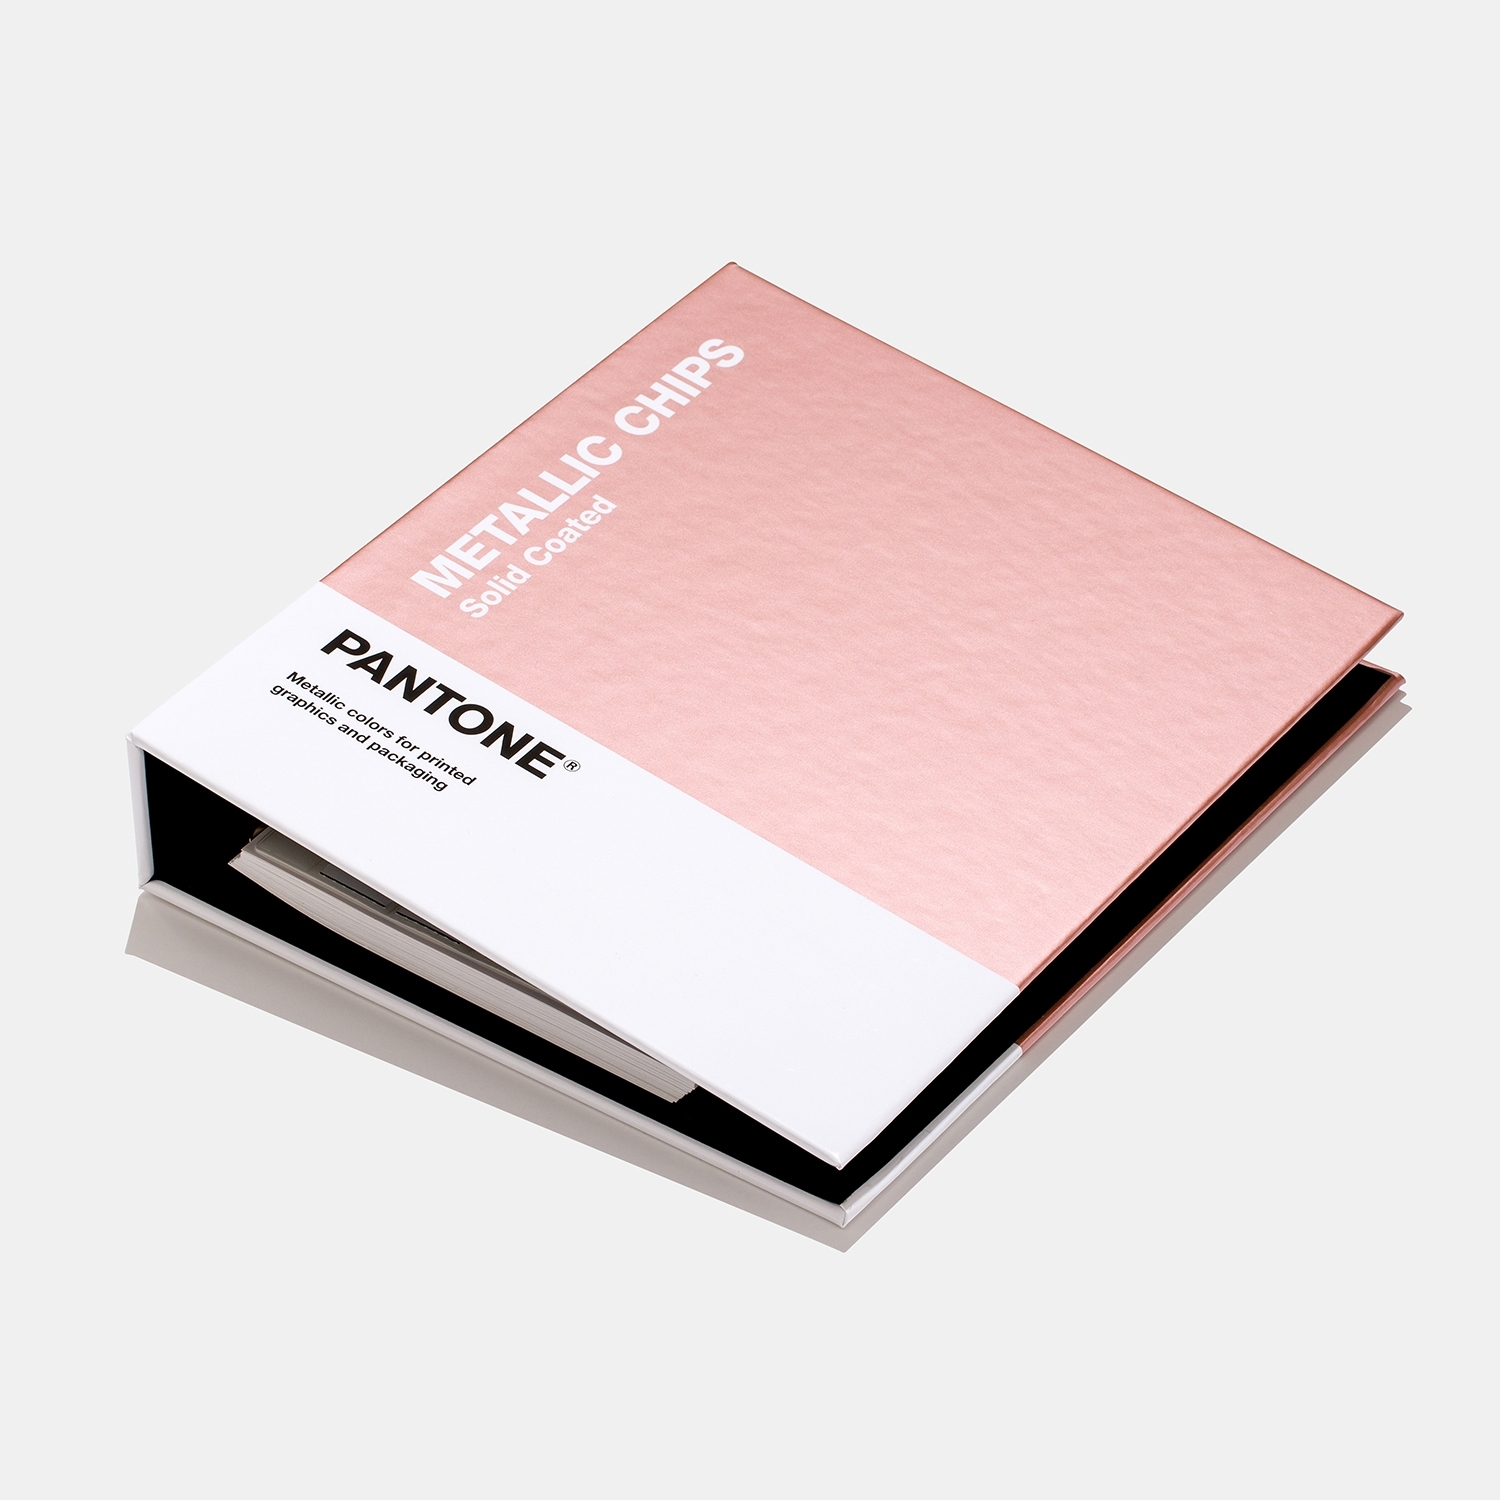 Shop Pantone Metallic Chips Book